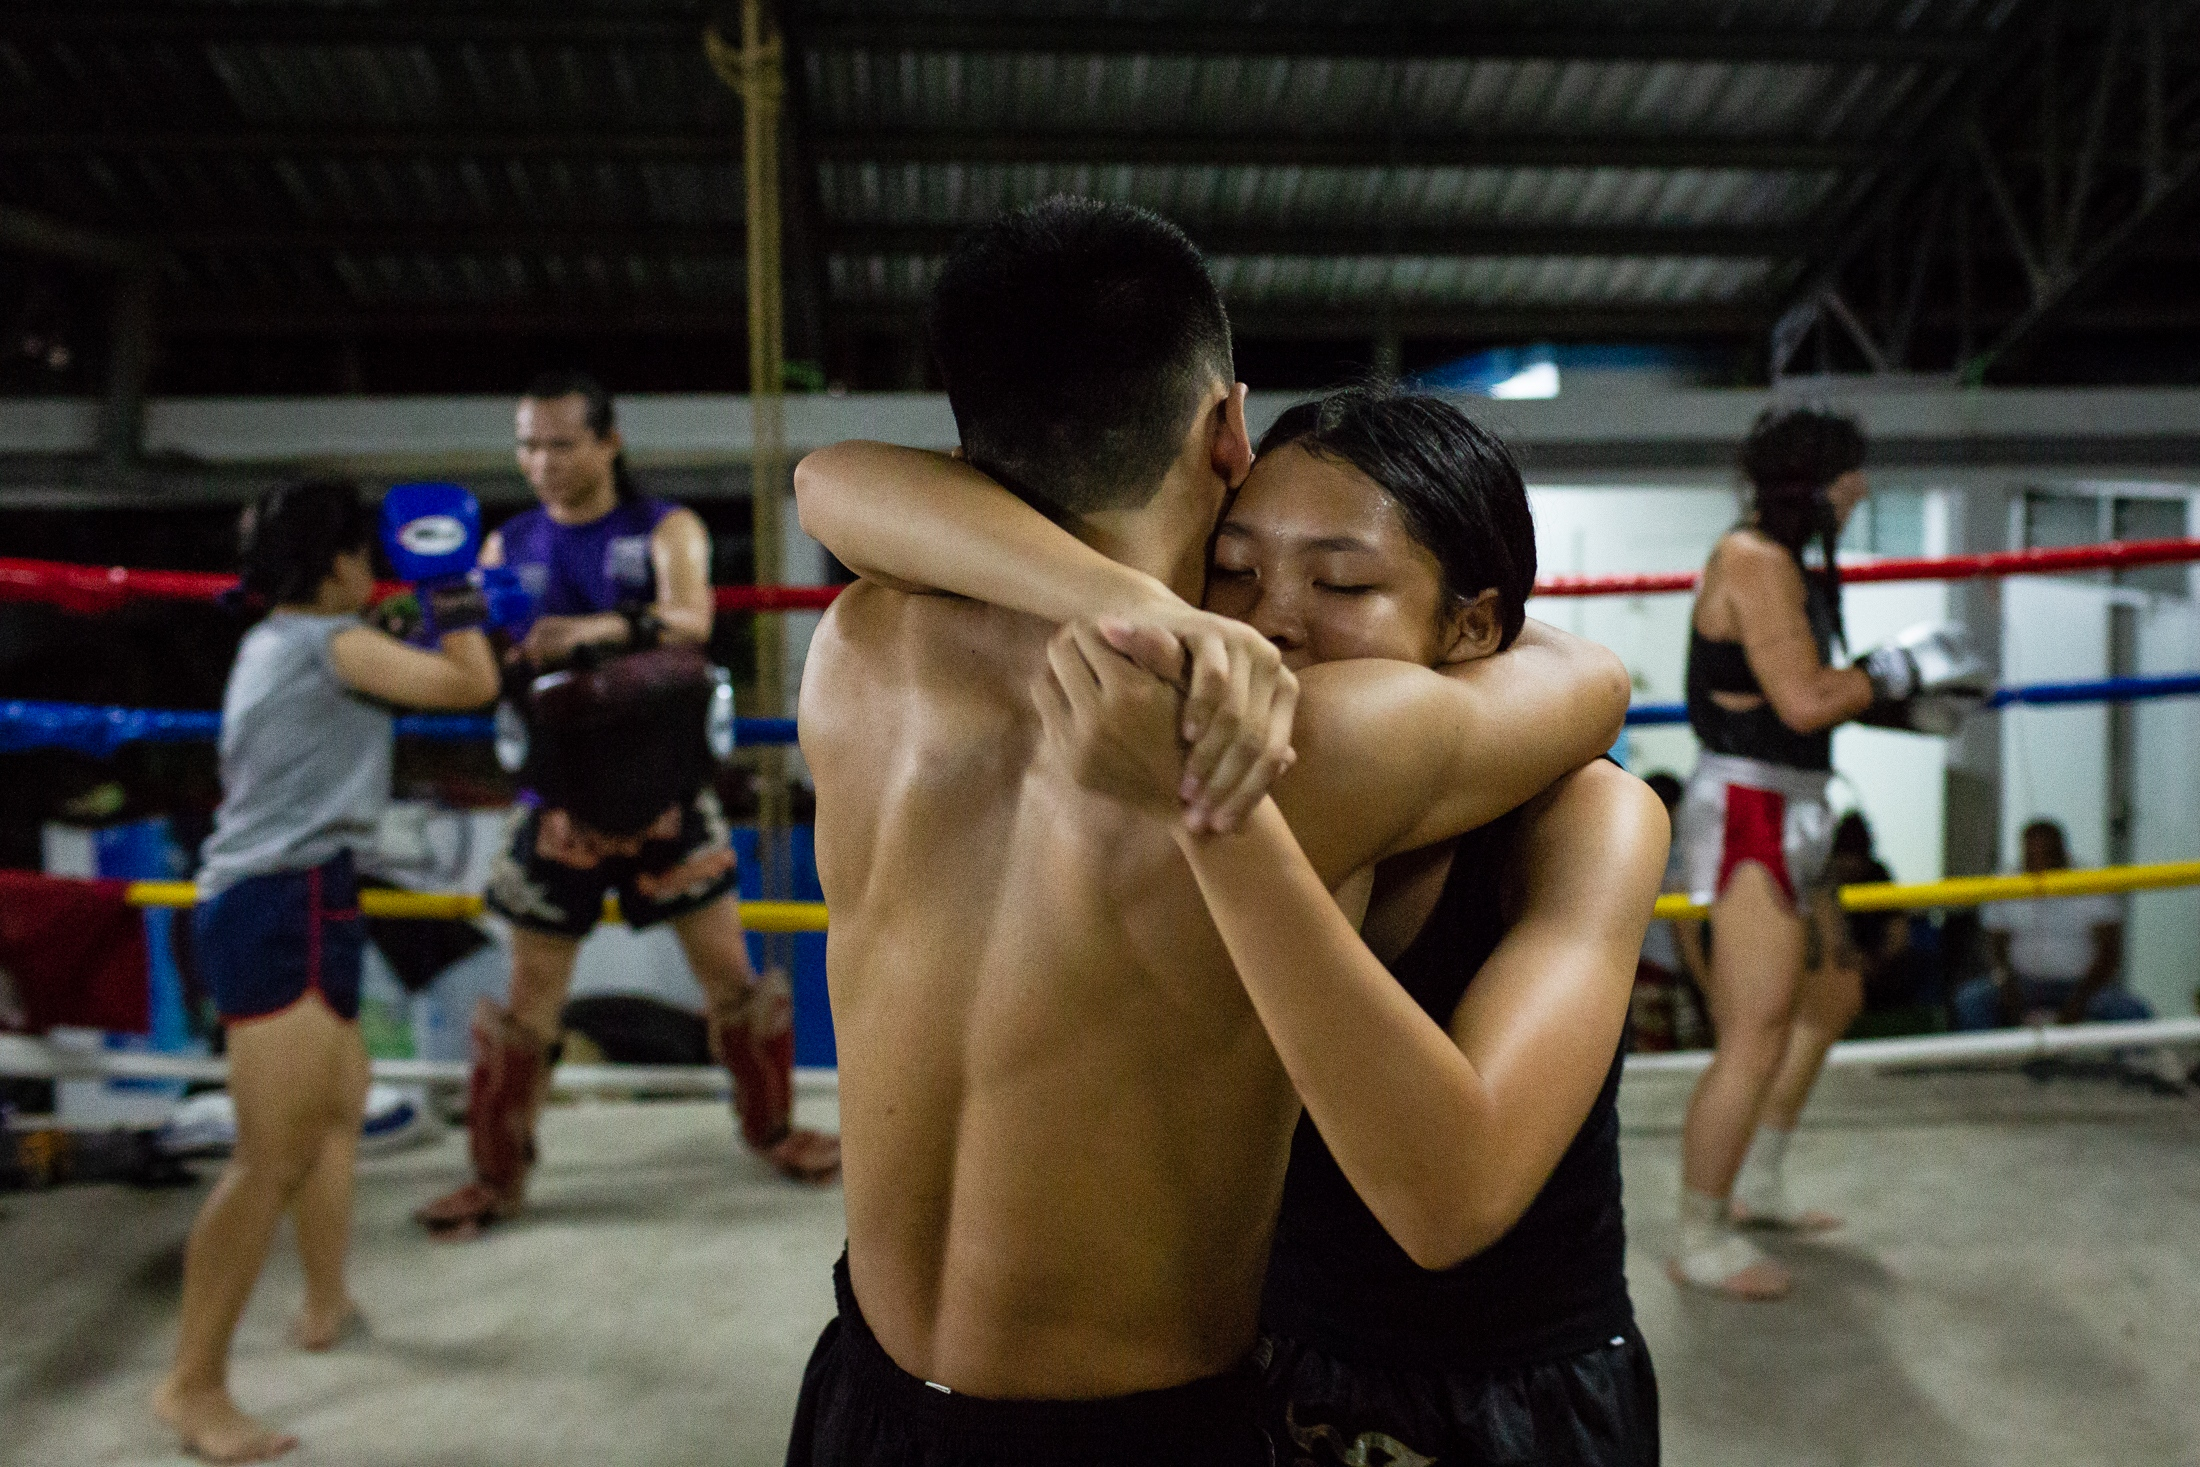 Peem struggles against a fighter during a training session at the Muay Thai Sakchatree gym in Chiang Mai, Thailand, 27th September 2018.  Practising against men is a way for women to measure their strength and to become stronger since men's Muay Thai is usually much more physical.